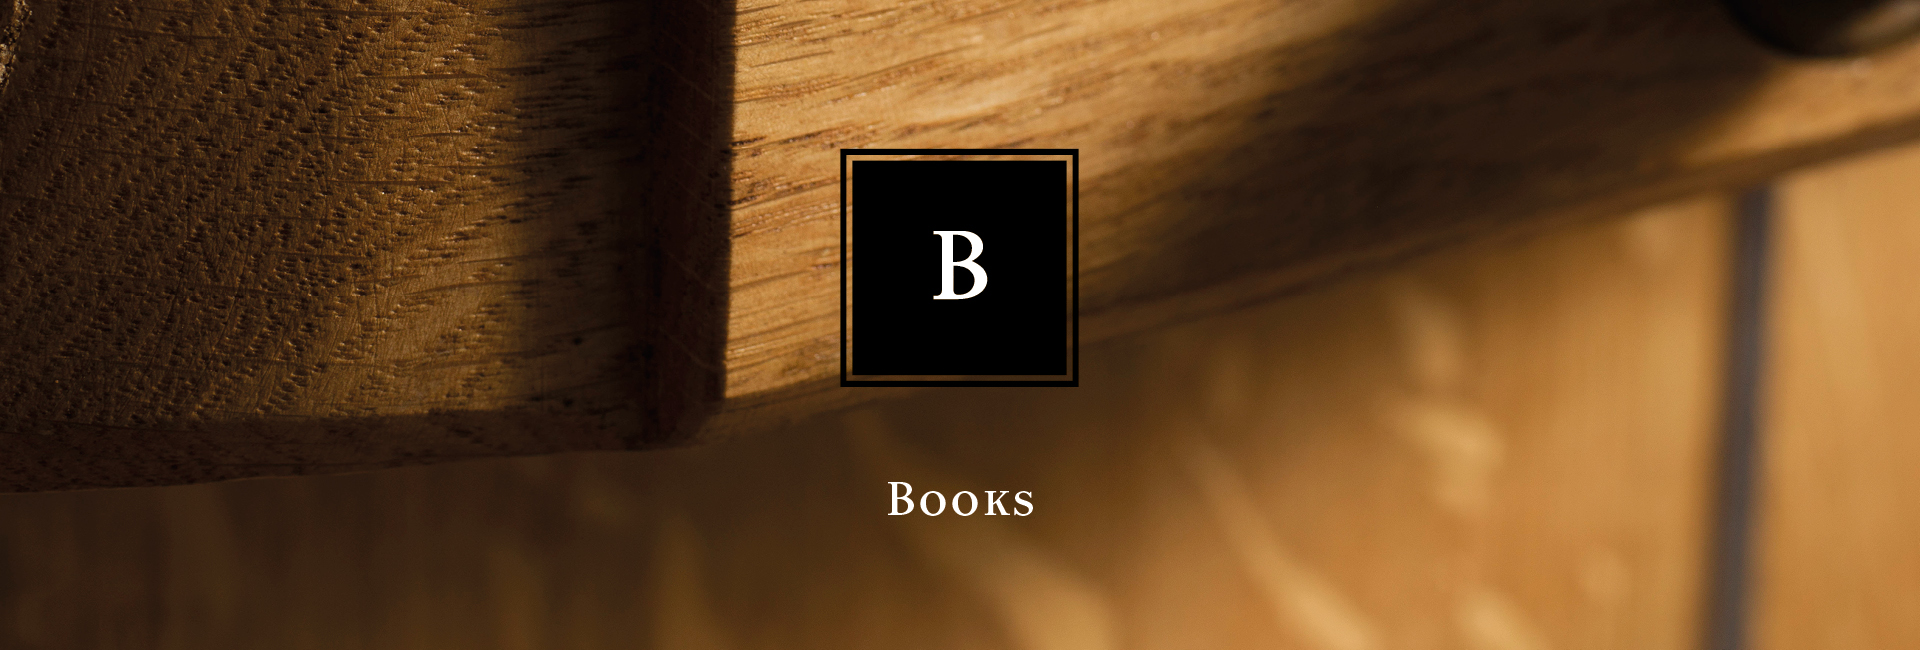 Books Directory